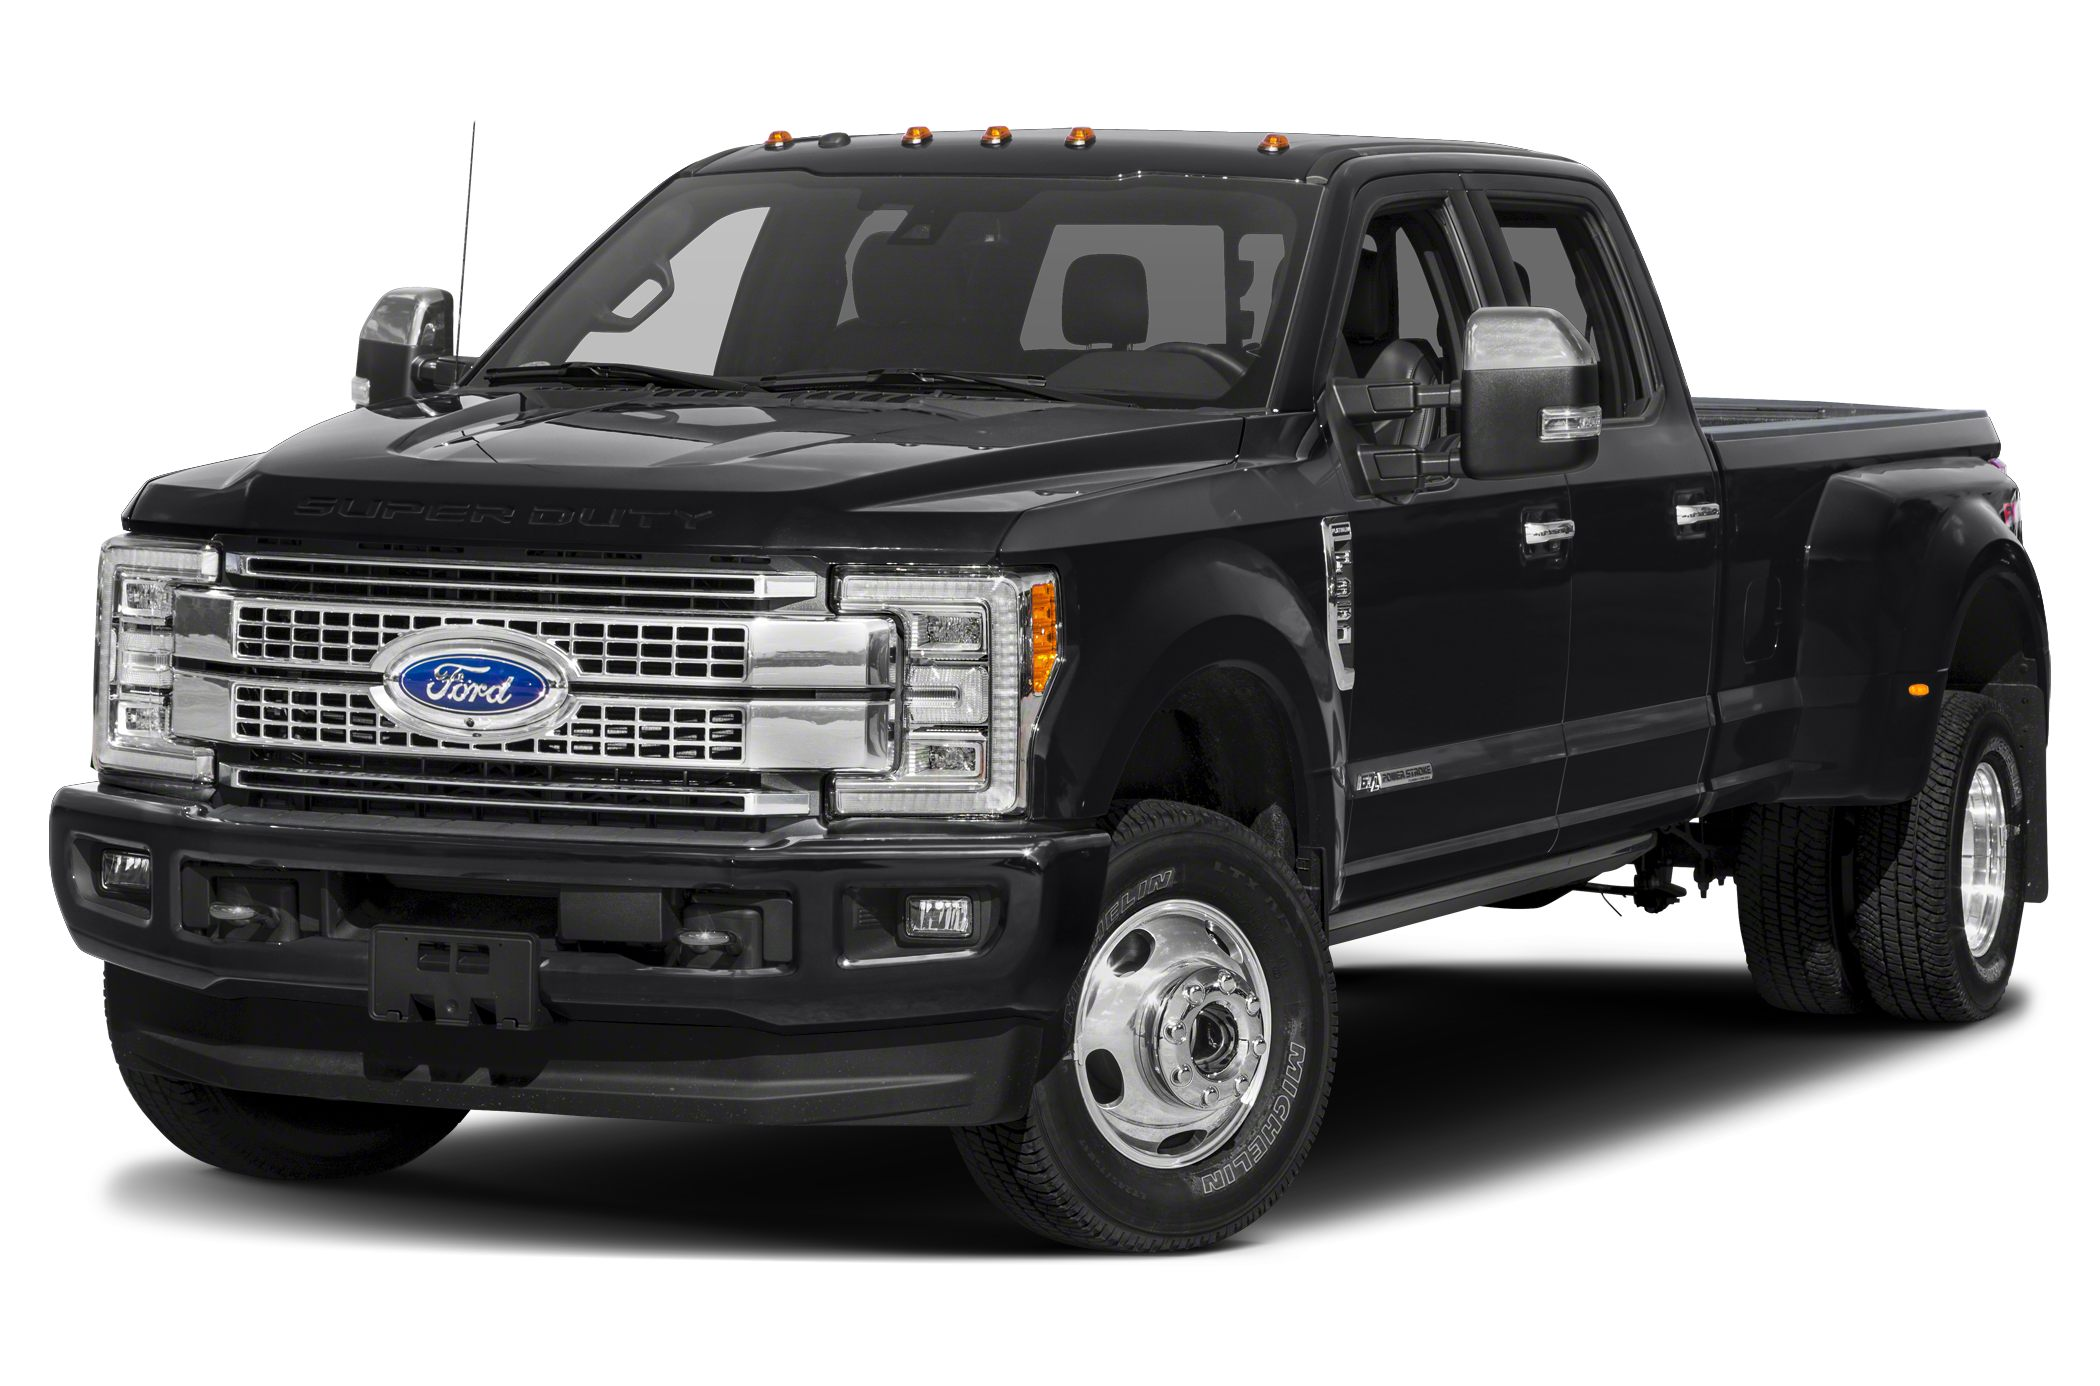 Ford F 350 Truck Models Price Specs Reviews Cars Com